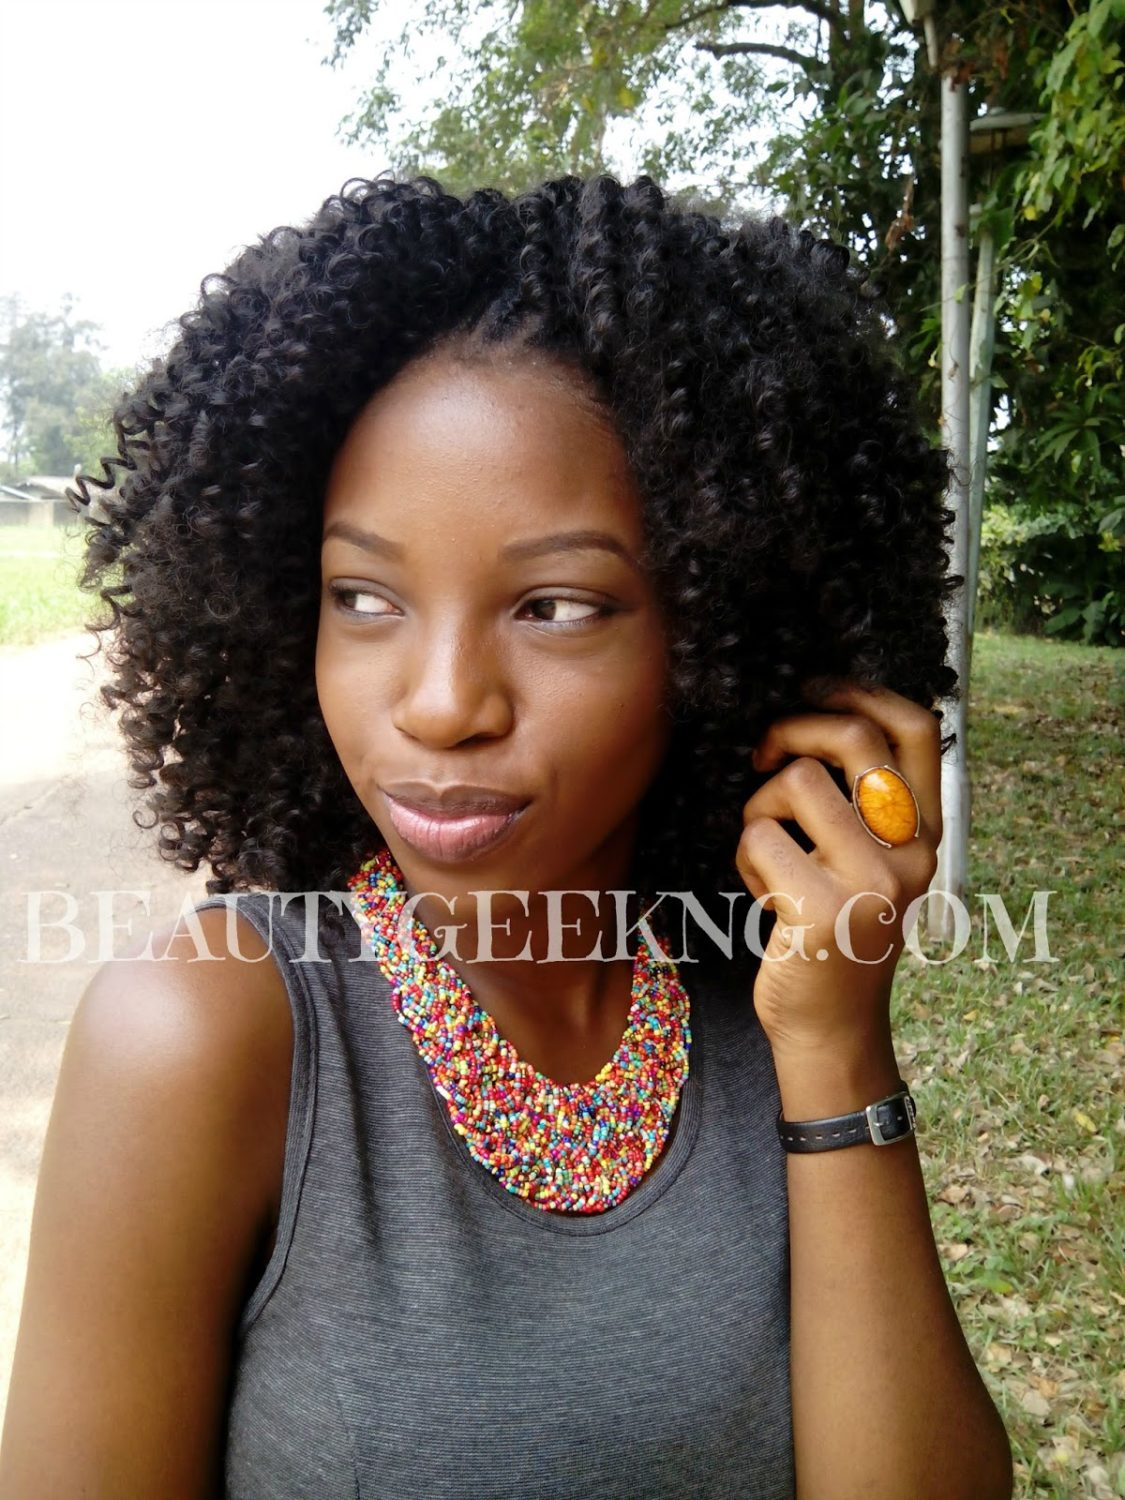 Weavon hair fixed in nigeria hairstyle gallery - Weavon Hair Fixed In Nigeria Hairstyle Gallery 42